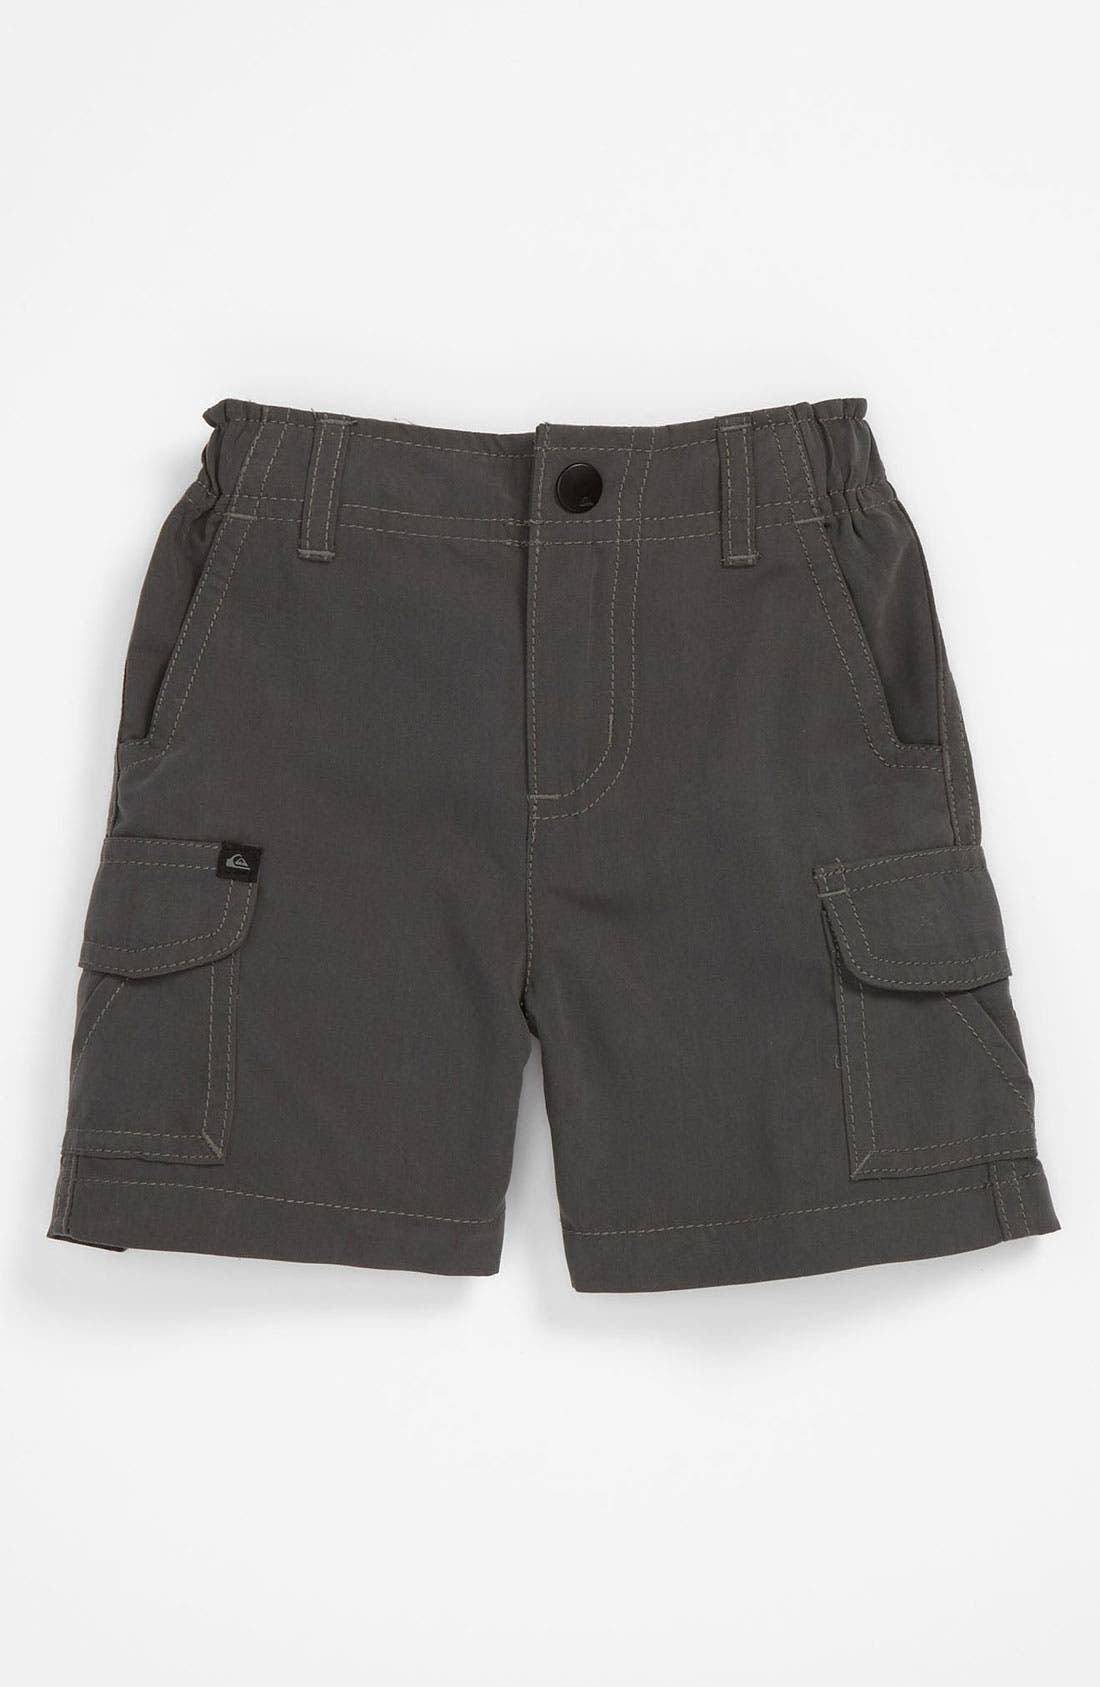 Main Image - Quiksilver 'Phofilled' Shorts (Toddler)